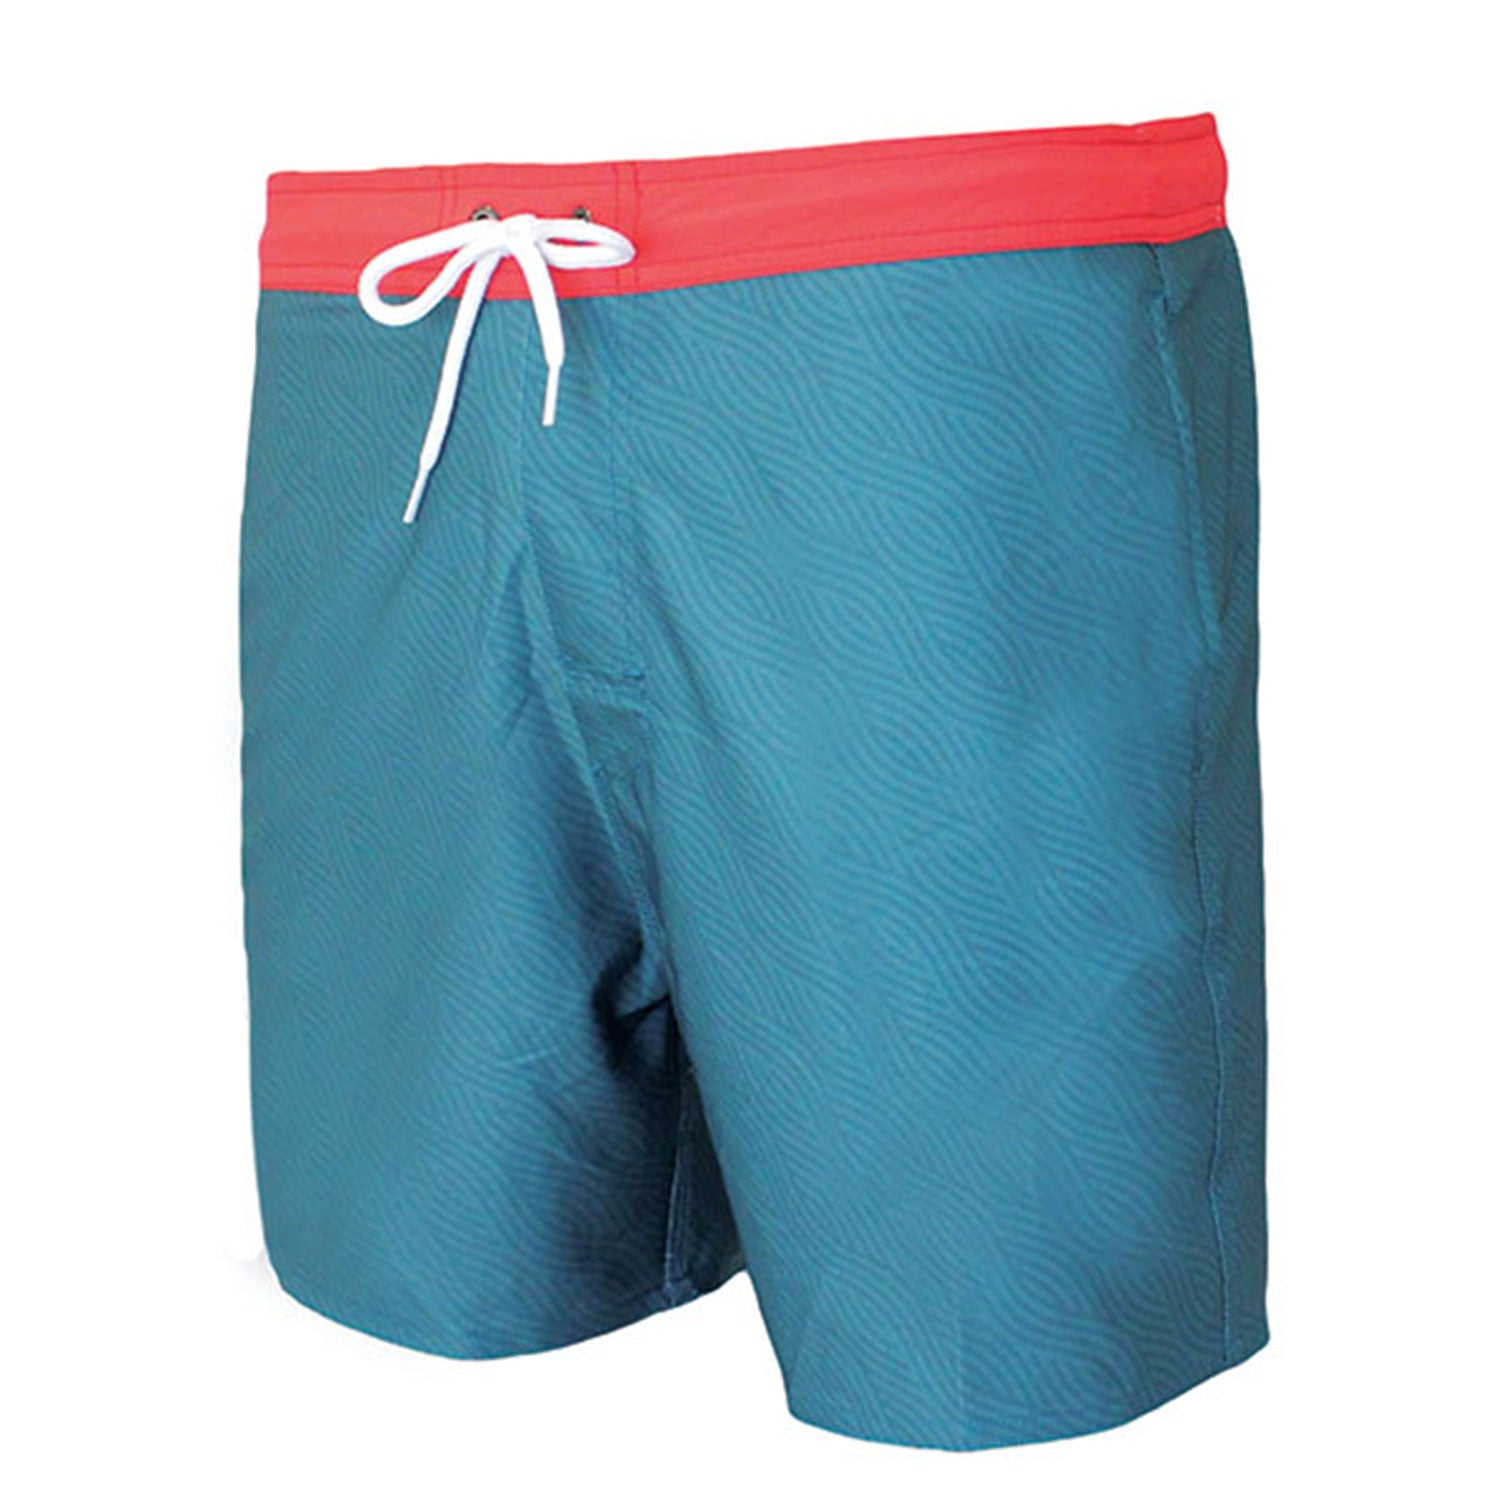 Waxx Heaven Green Men's Beach Short